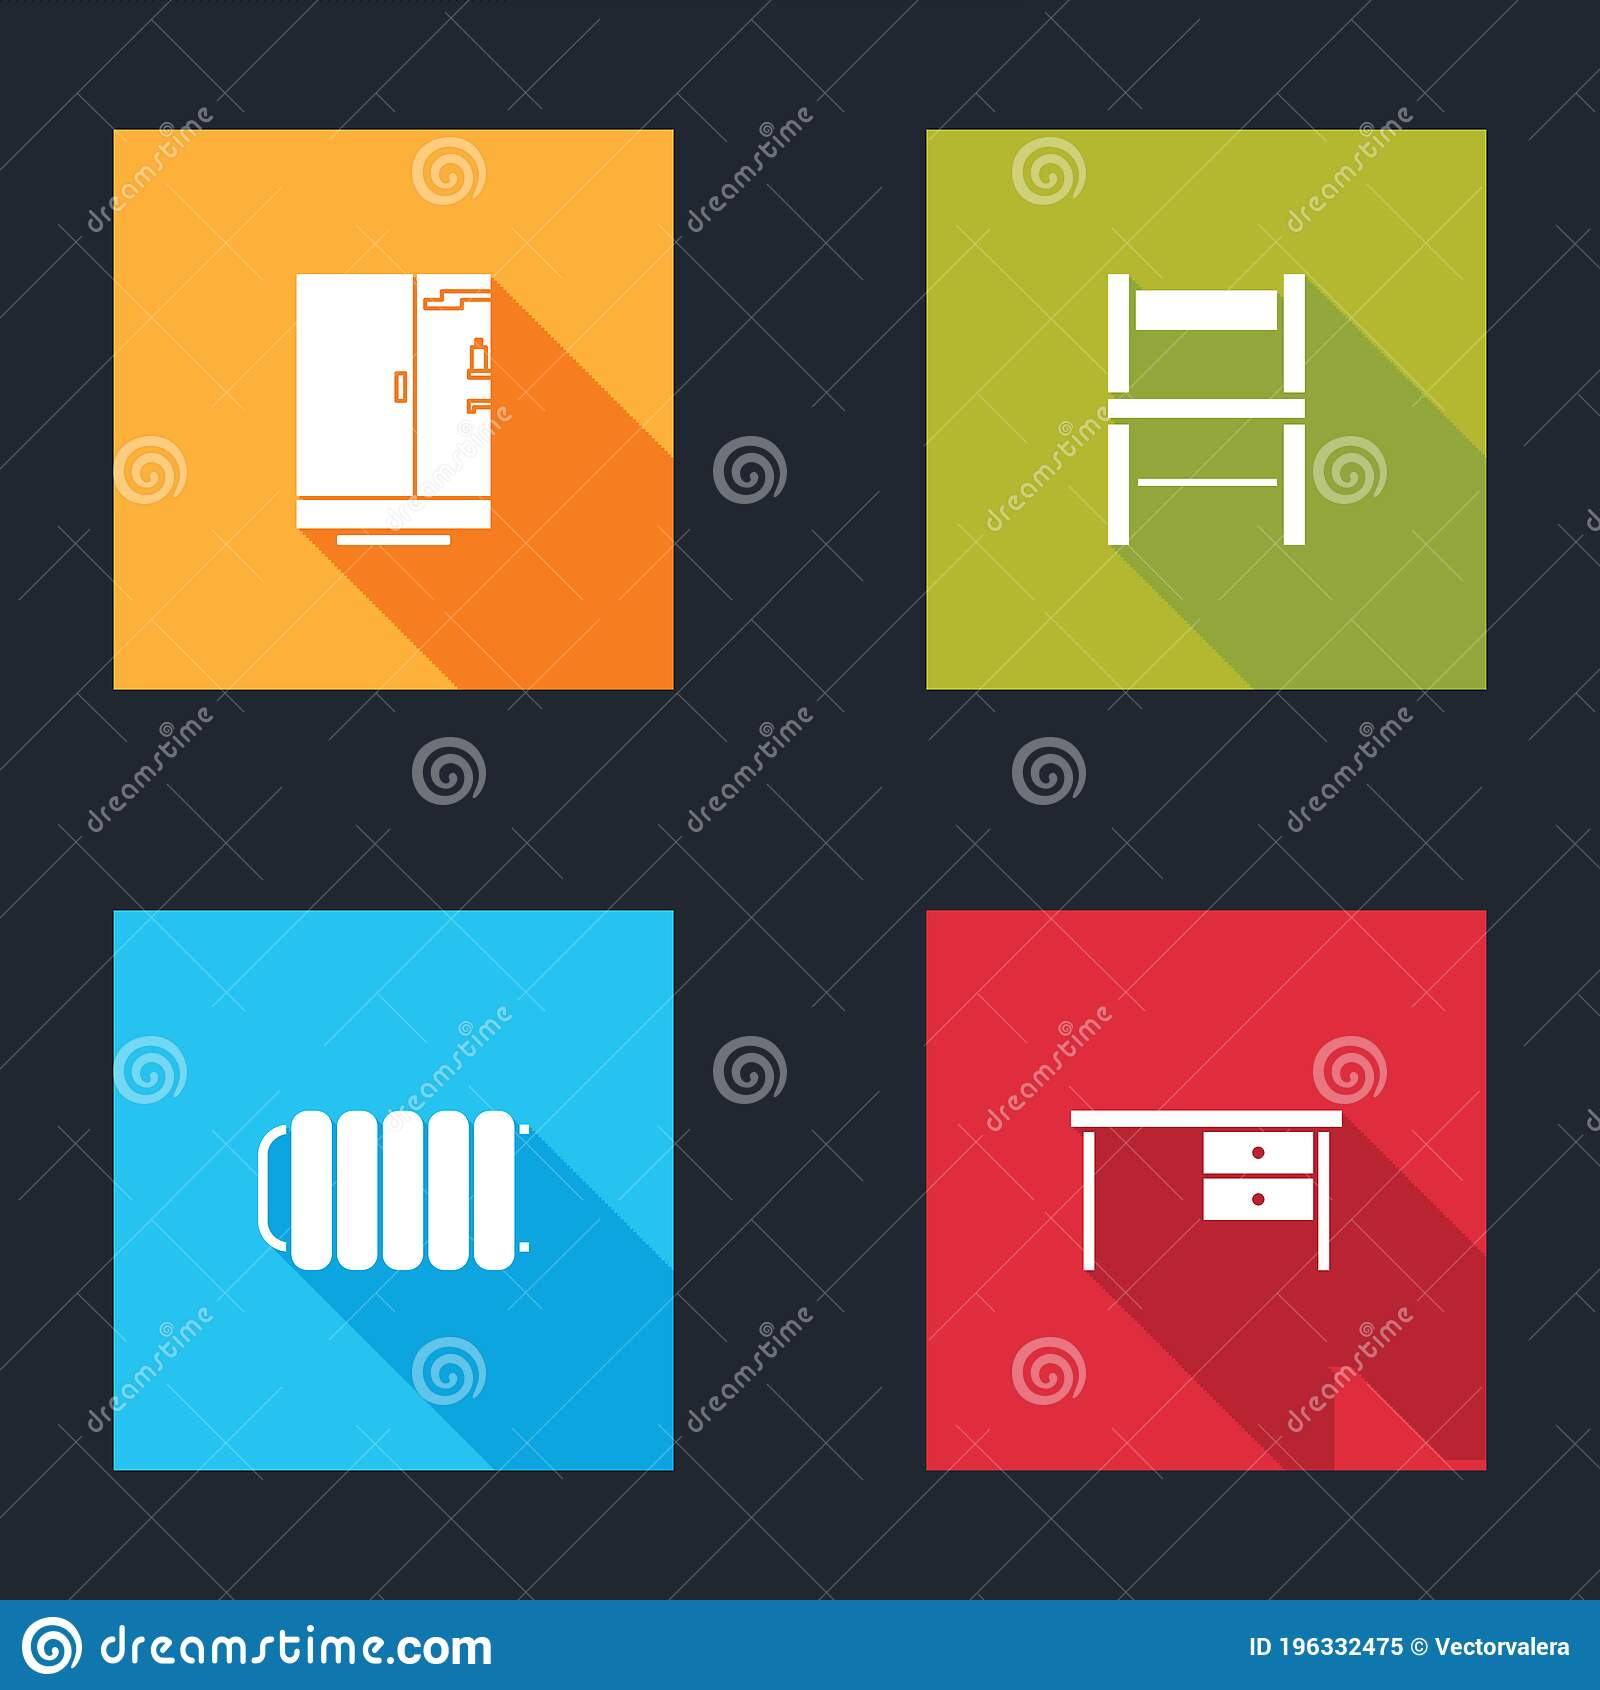 Set Shower Cabin Chair Heating Radiator And Office Desk Icon Vector Stock Vector Illustration Of Business Heat 196332475